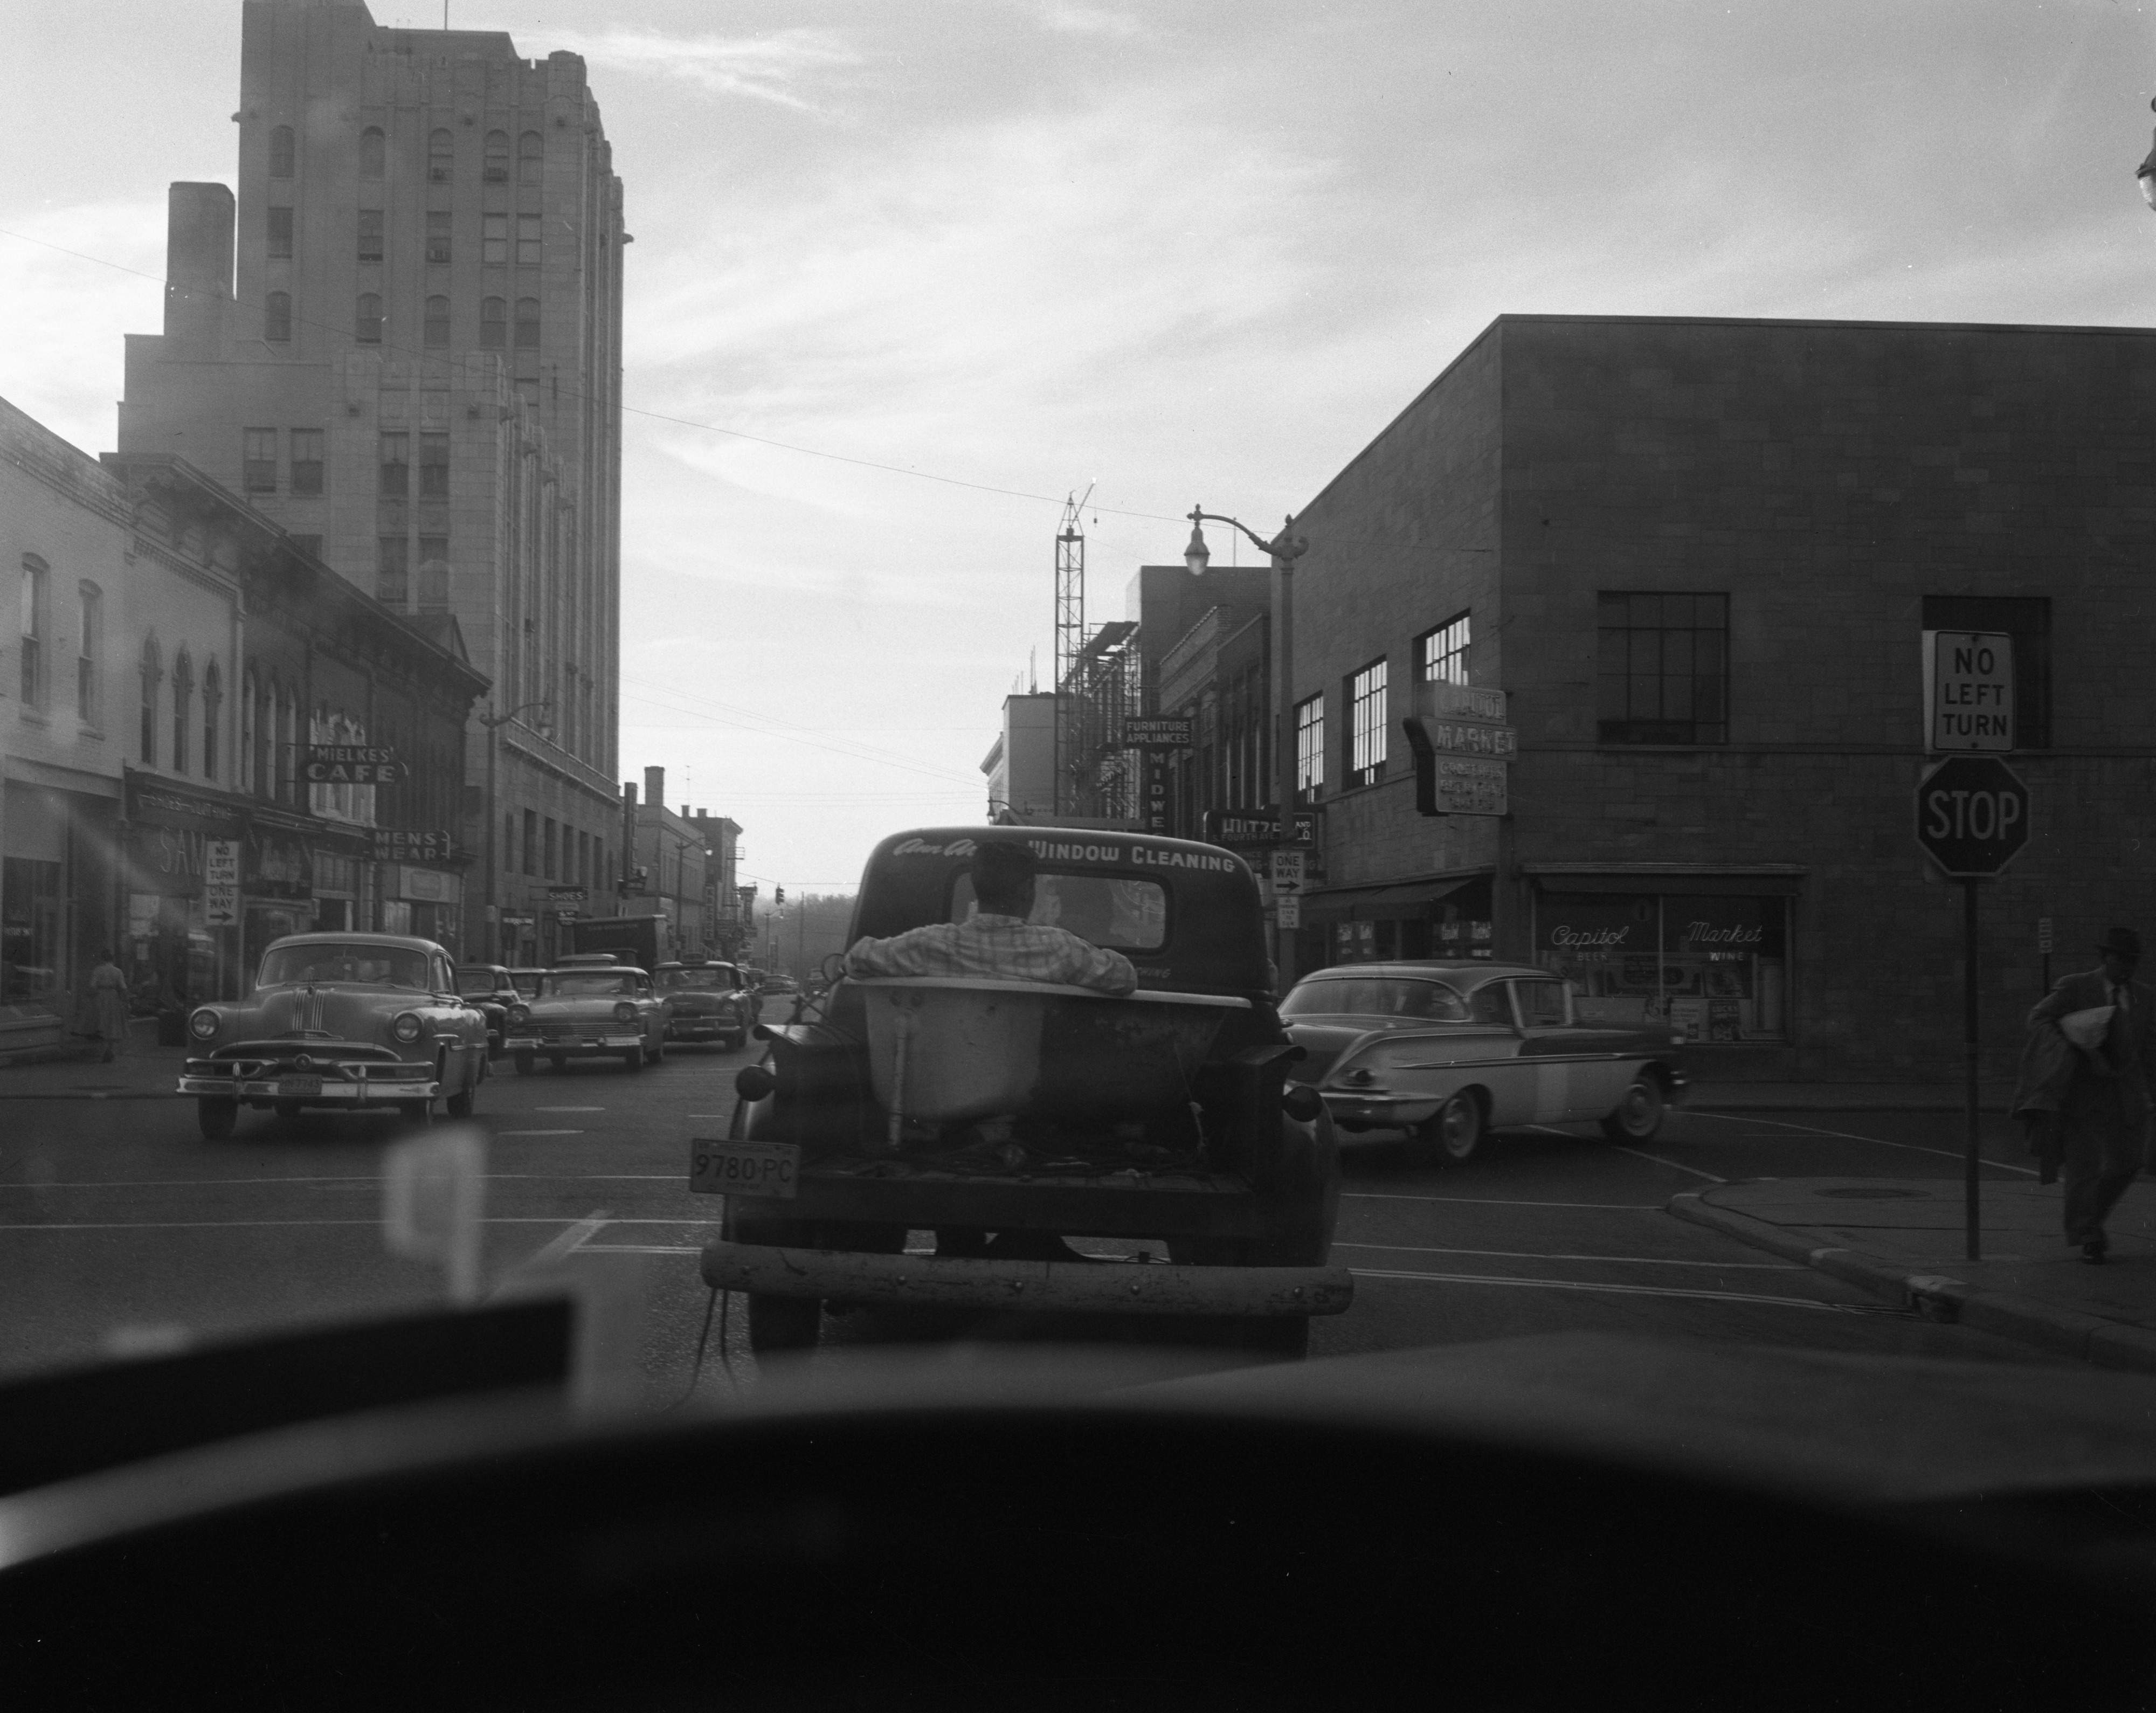 window cleaning ann arbor man rides in back of truck bathtub october 1958 ann arbor window cleaning district library